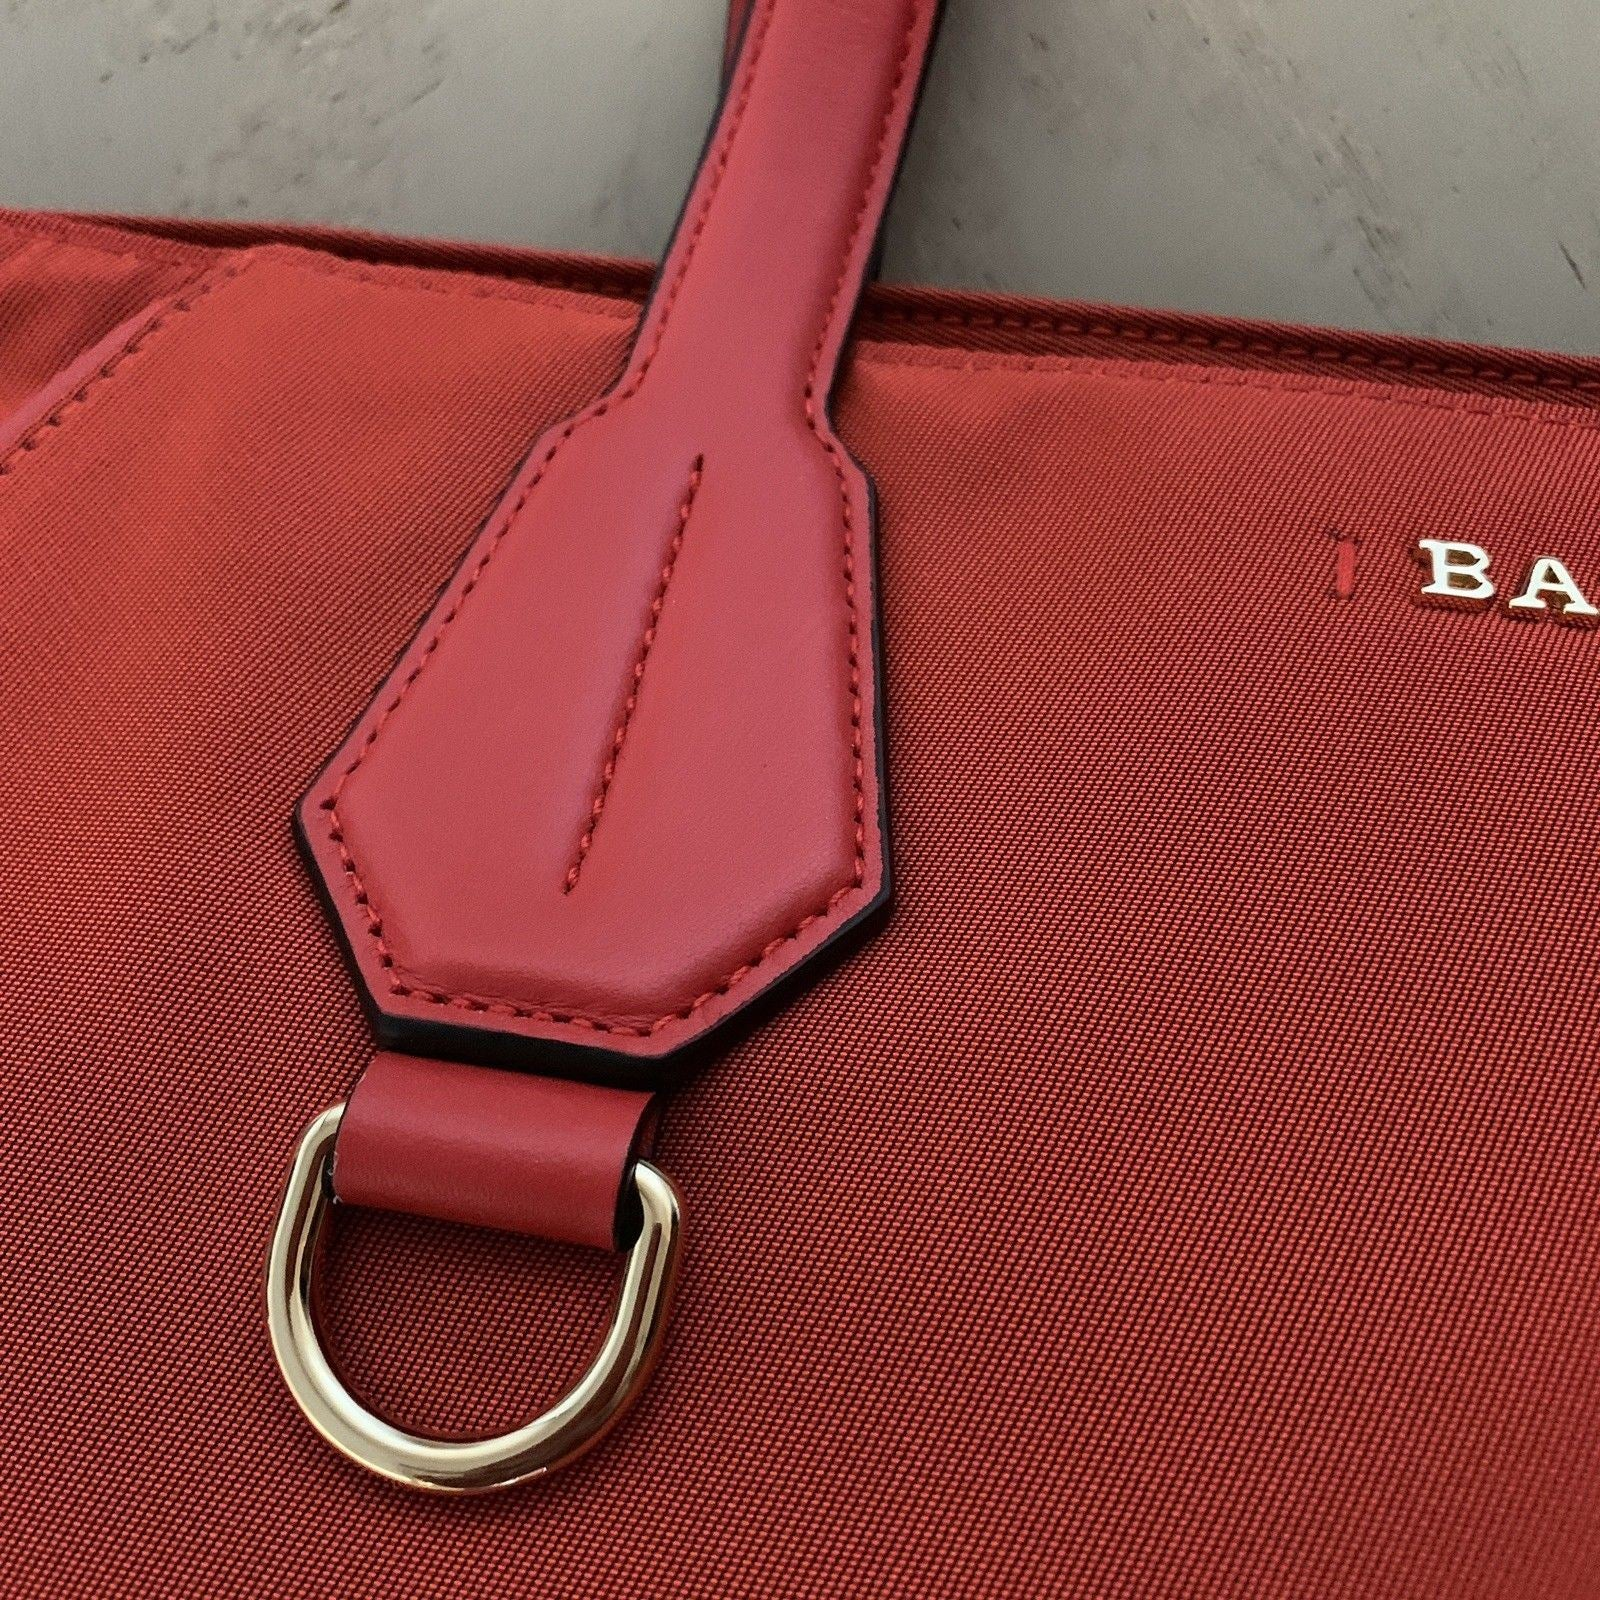 New $542 Bally Calibri Women's Nylon Leather Handbag Bag Red 6215581 Switza